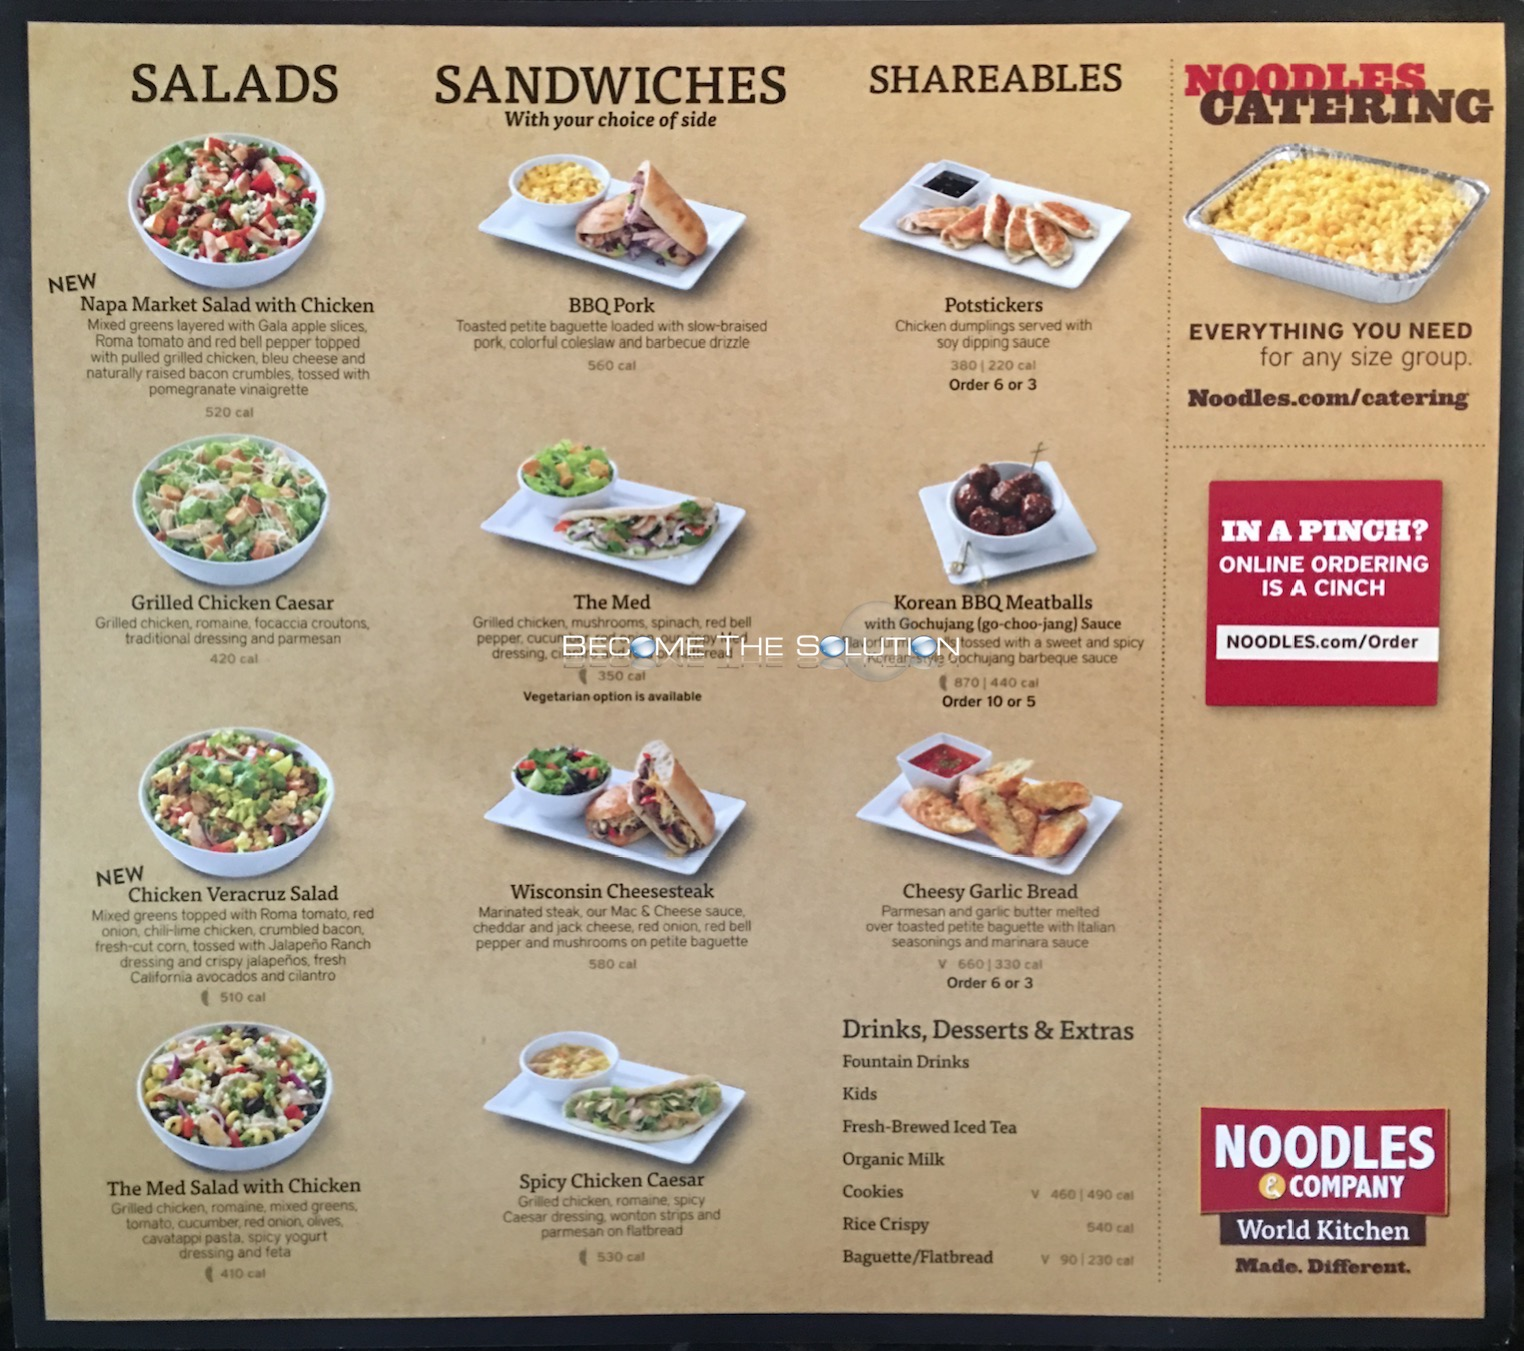 graphic relating to Noodles and Company Printable Menu titled Noodles Cafe Menu Similar Search phrases Recommendations